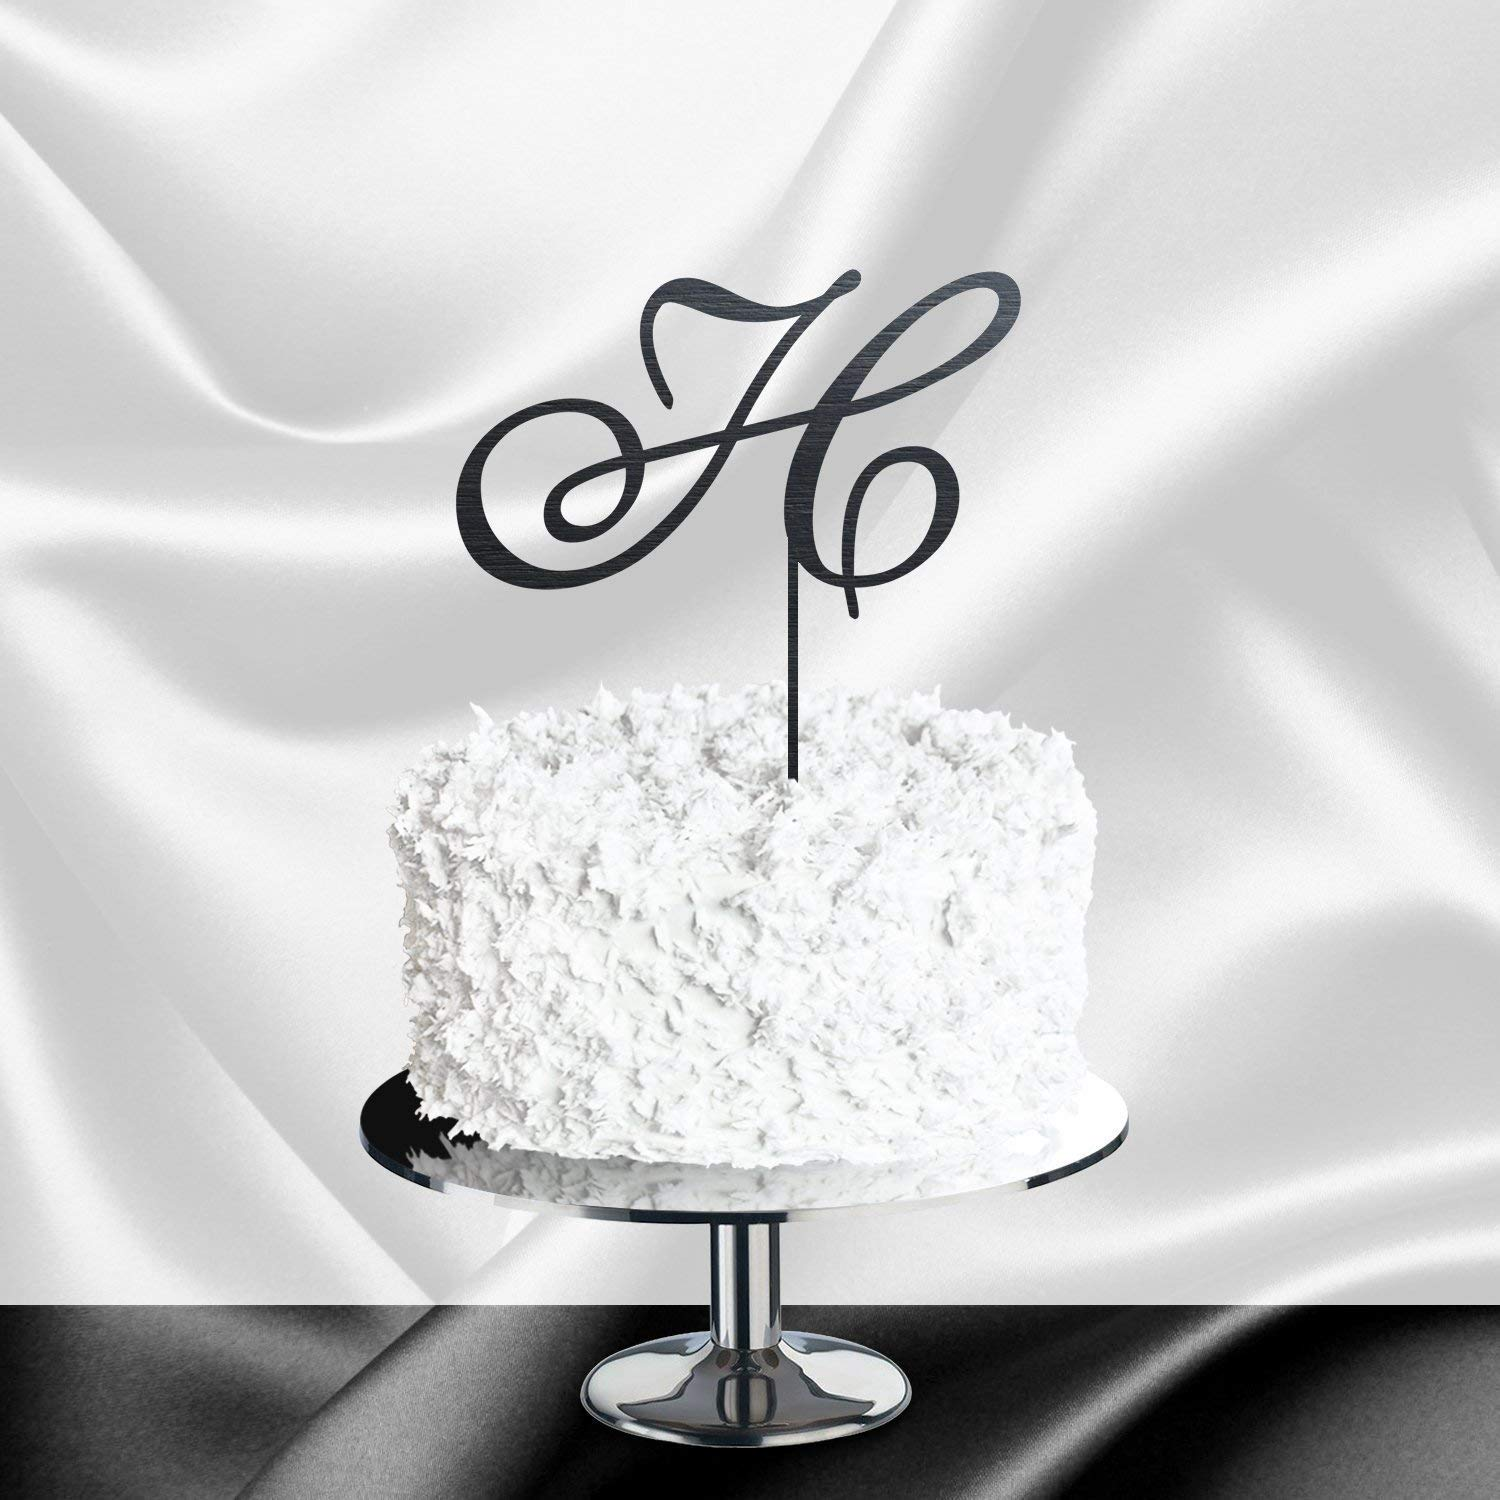 Personalized Cake Topper Gold Letter Cake Topper Wedding Cake Topper Letter H Initial Cake Topper for Wedding Monogram Cake Topper